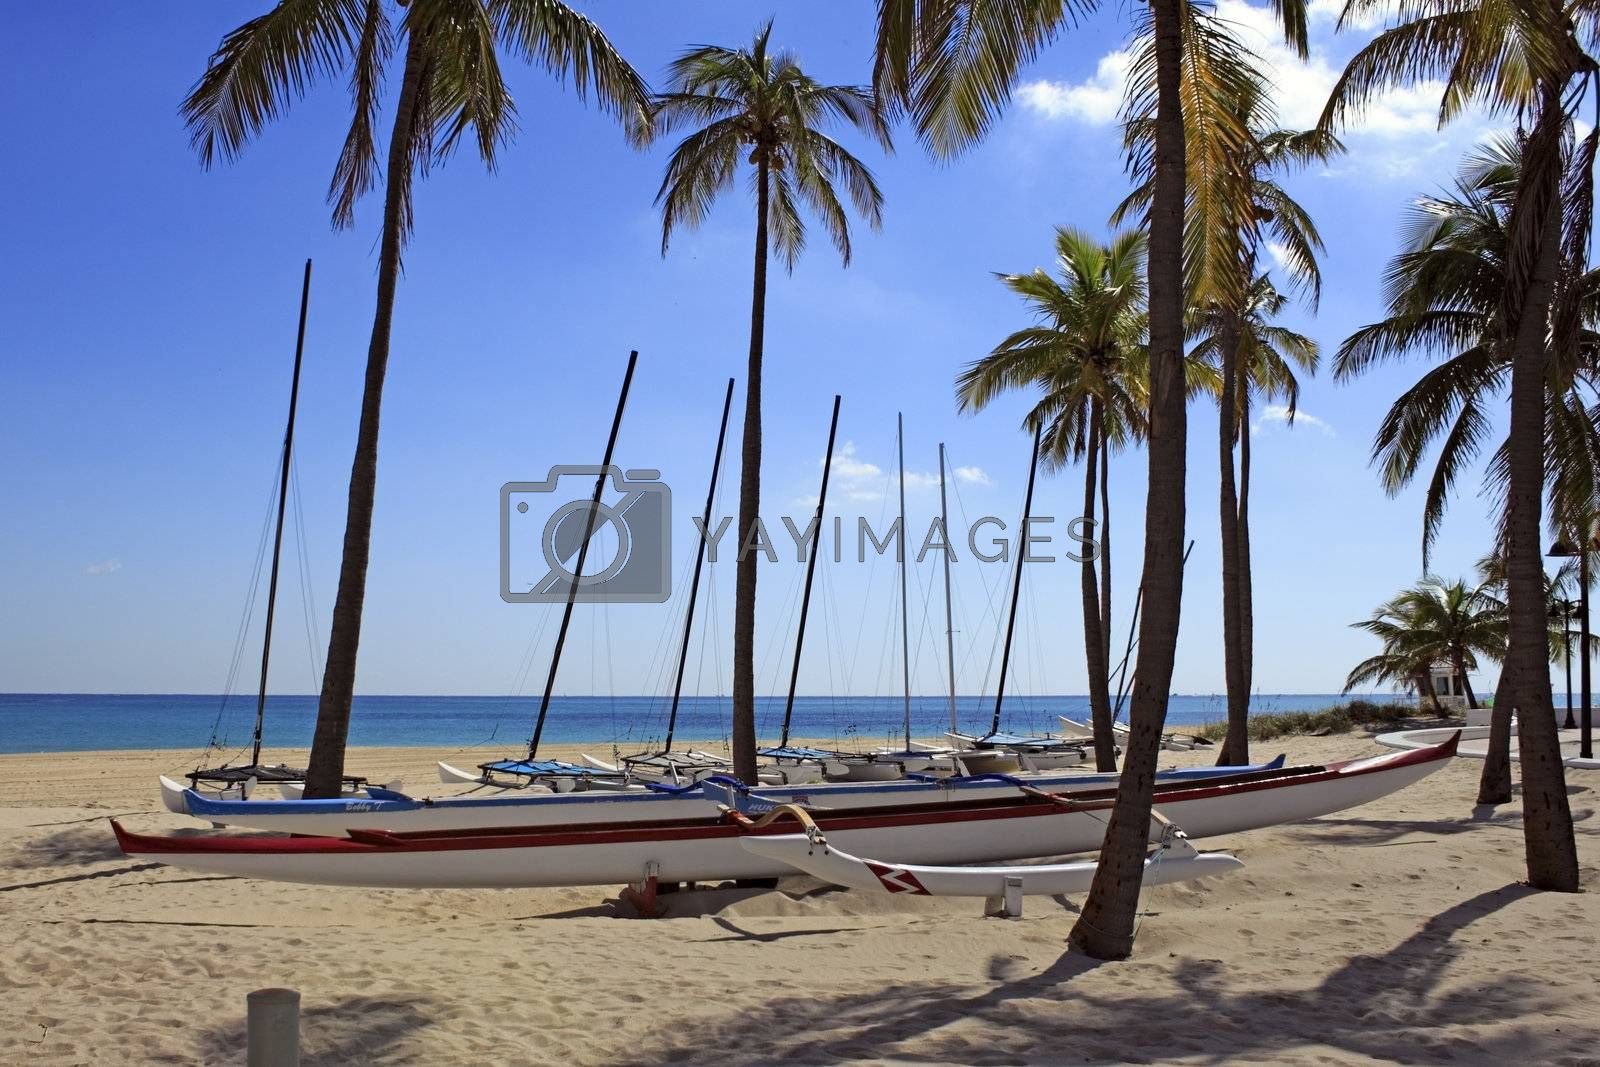 FORT LAUDERDALE, FLORIDA - NOVEMBER 1: About a dozen outrigger canoe boats available for renting to sail on the ocean north of South Beach Park on November 1, 2012 in Fort Lauderdale, Florida.